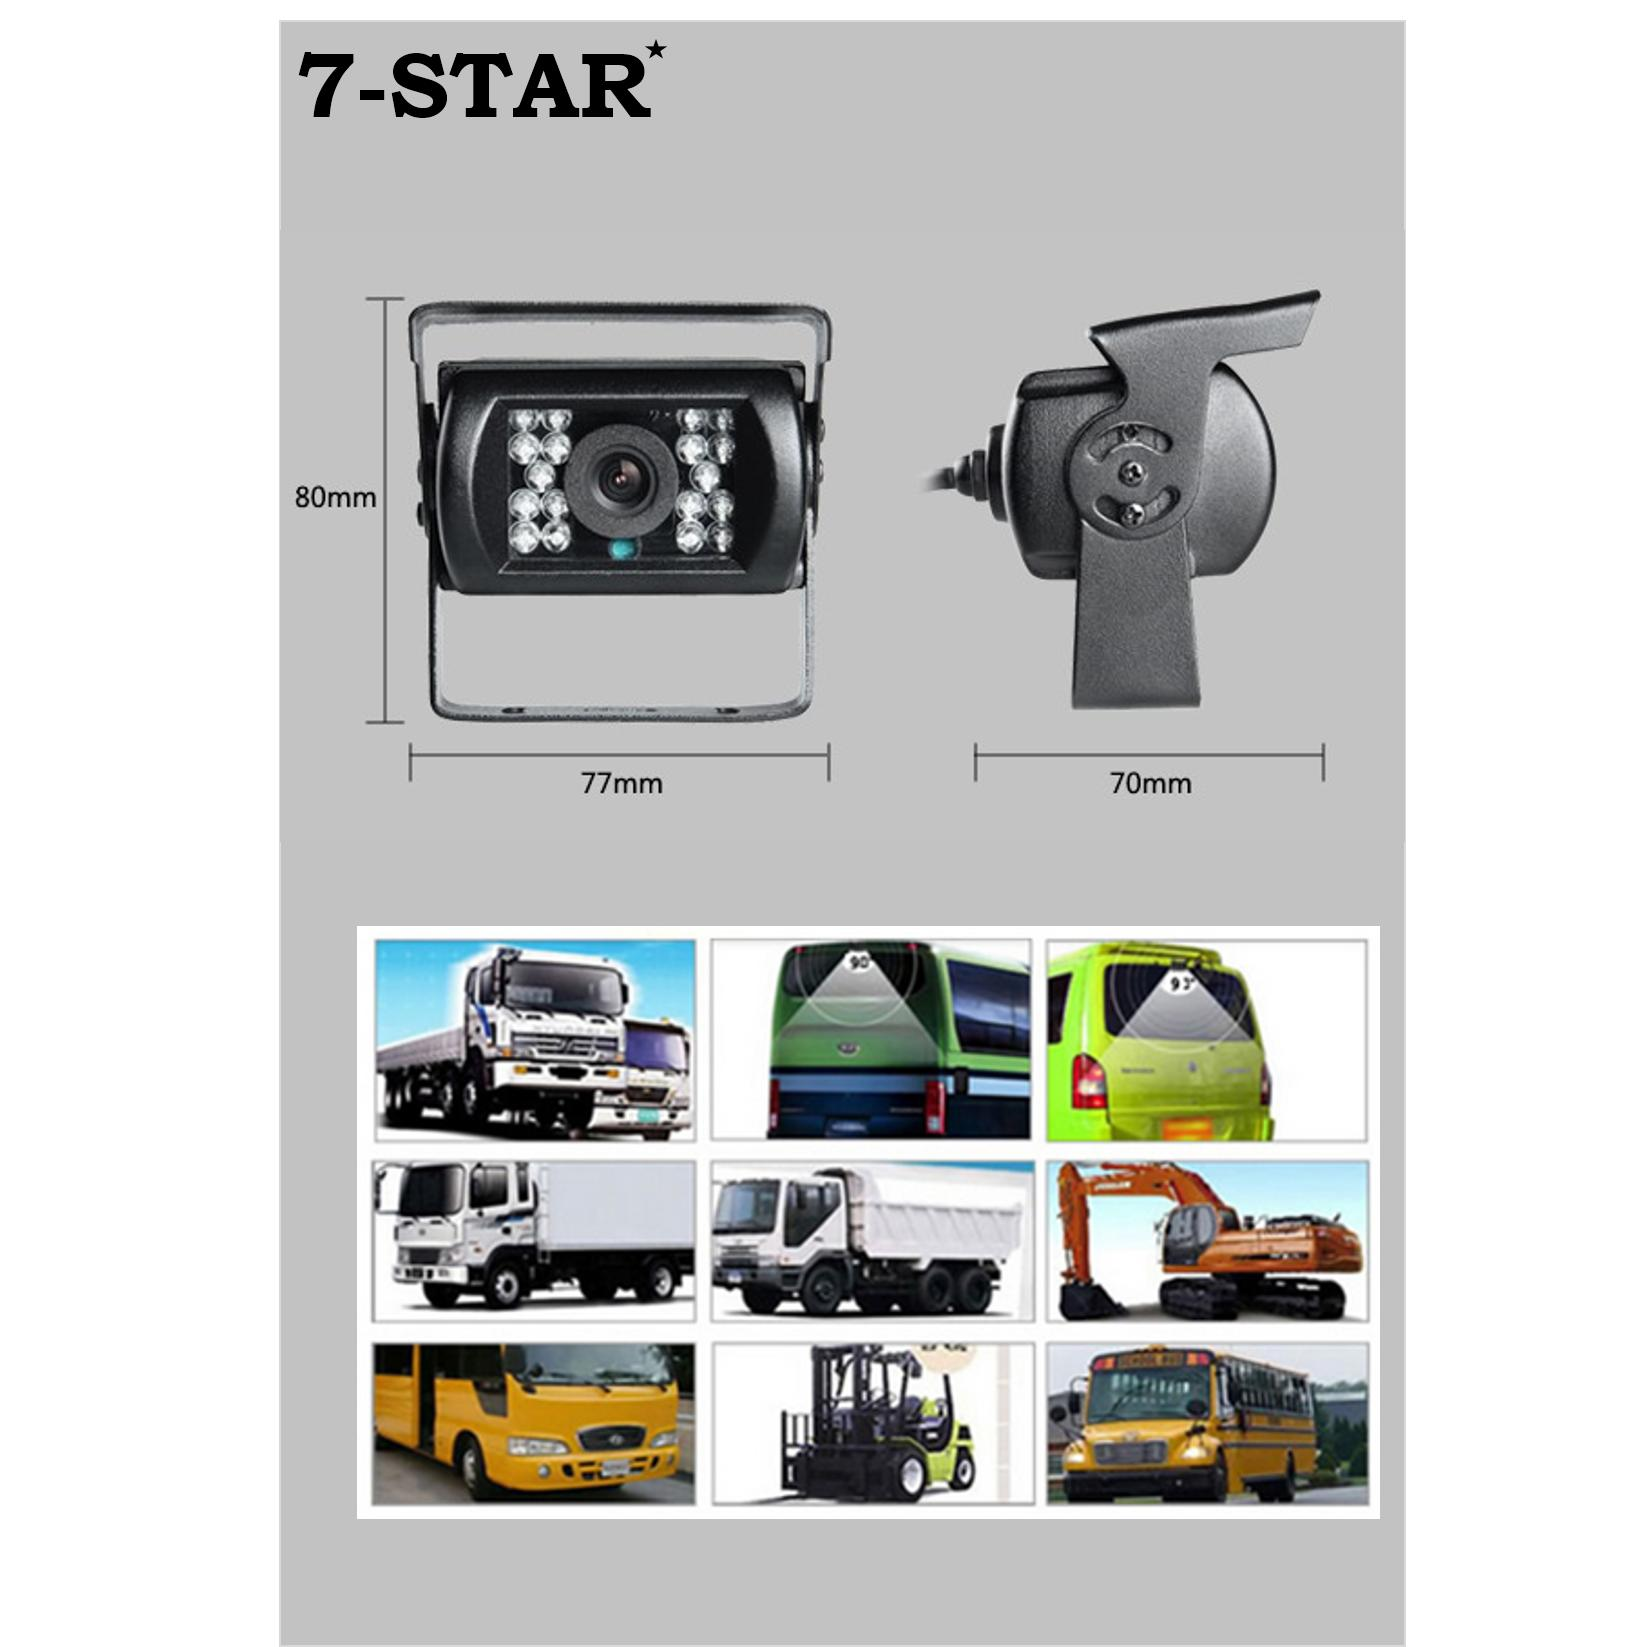 Sony CCD Weatherproof Rear View Car Camera For Vehicle/Bus/Truck/Coach/Trailer/Lorry/Van/Excavator/Crane Reverse Camera